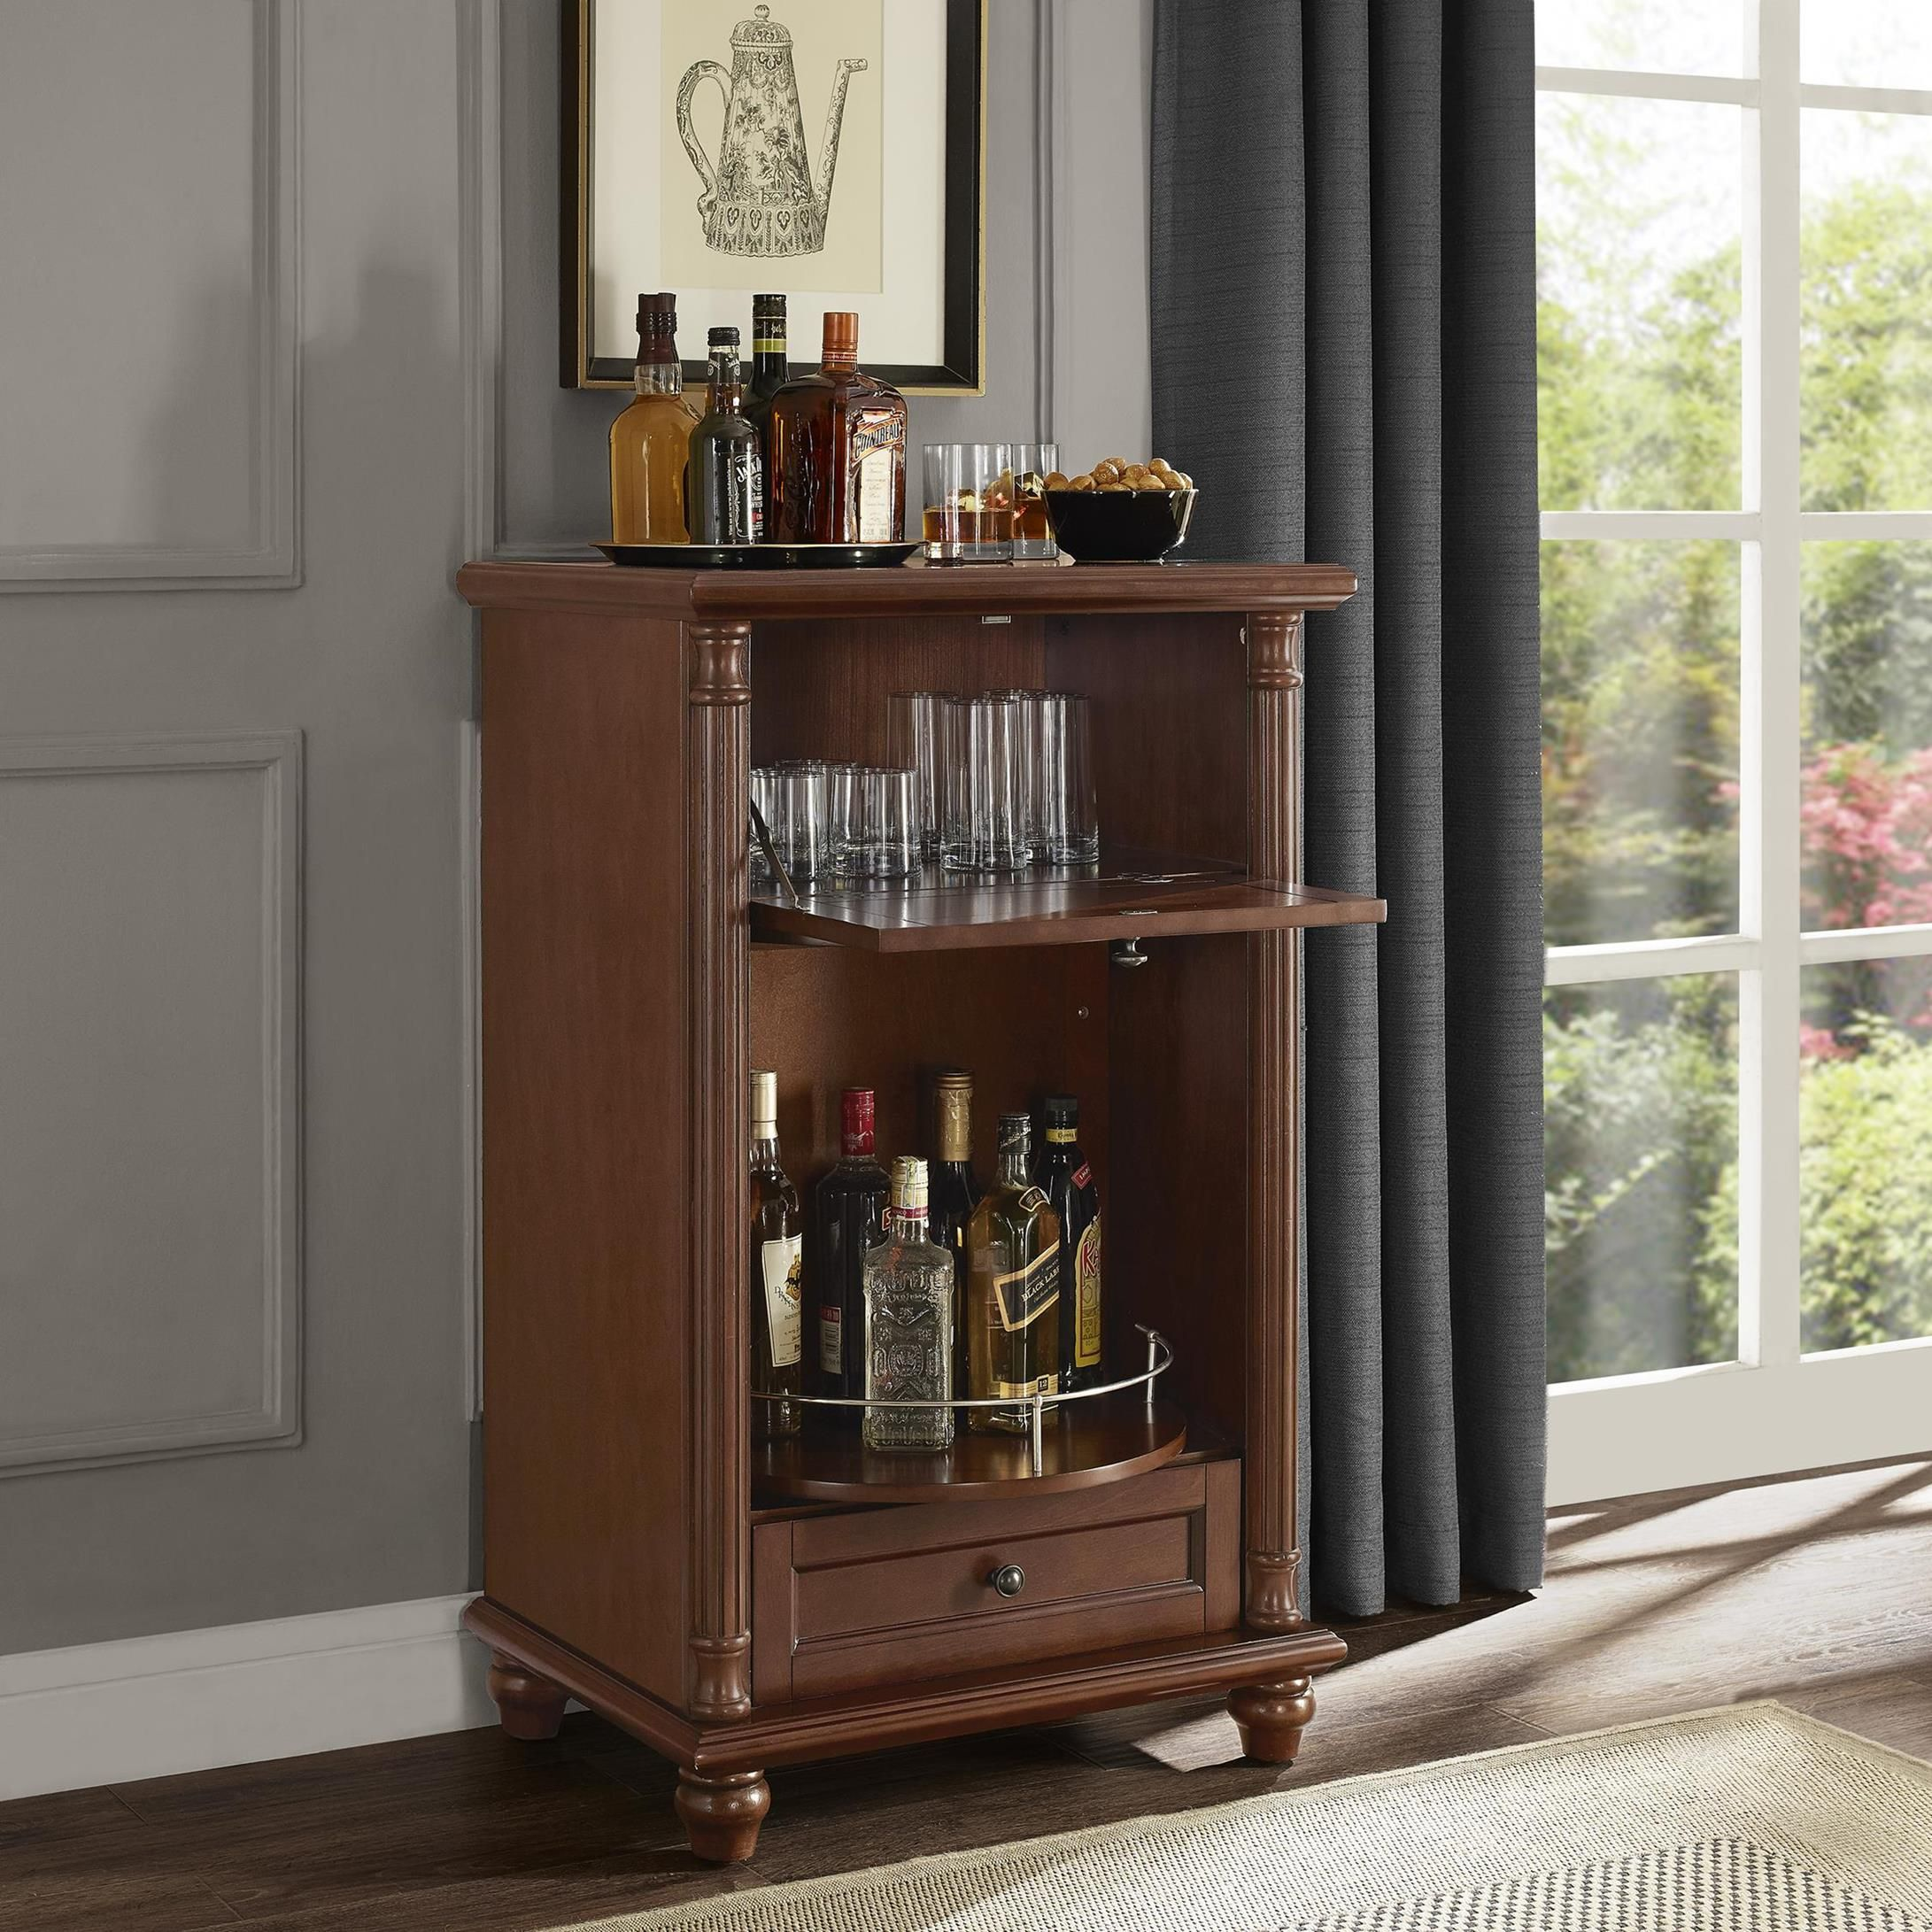 portable for wine hilarious glass material oak ht picturesque cabinet door plus with middle charcoal indulging bronze small bars doors ideas bar type hinges finish storage grand glacier family home salicaire wayfair room hs design